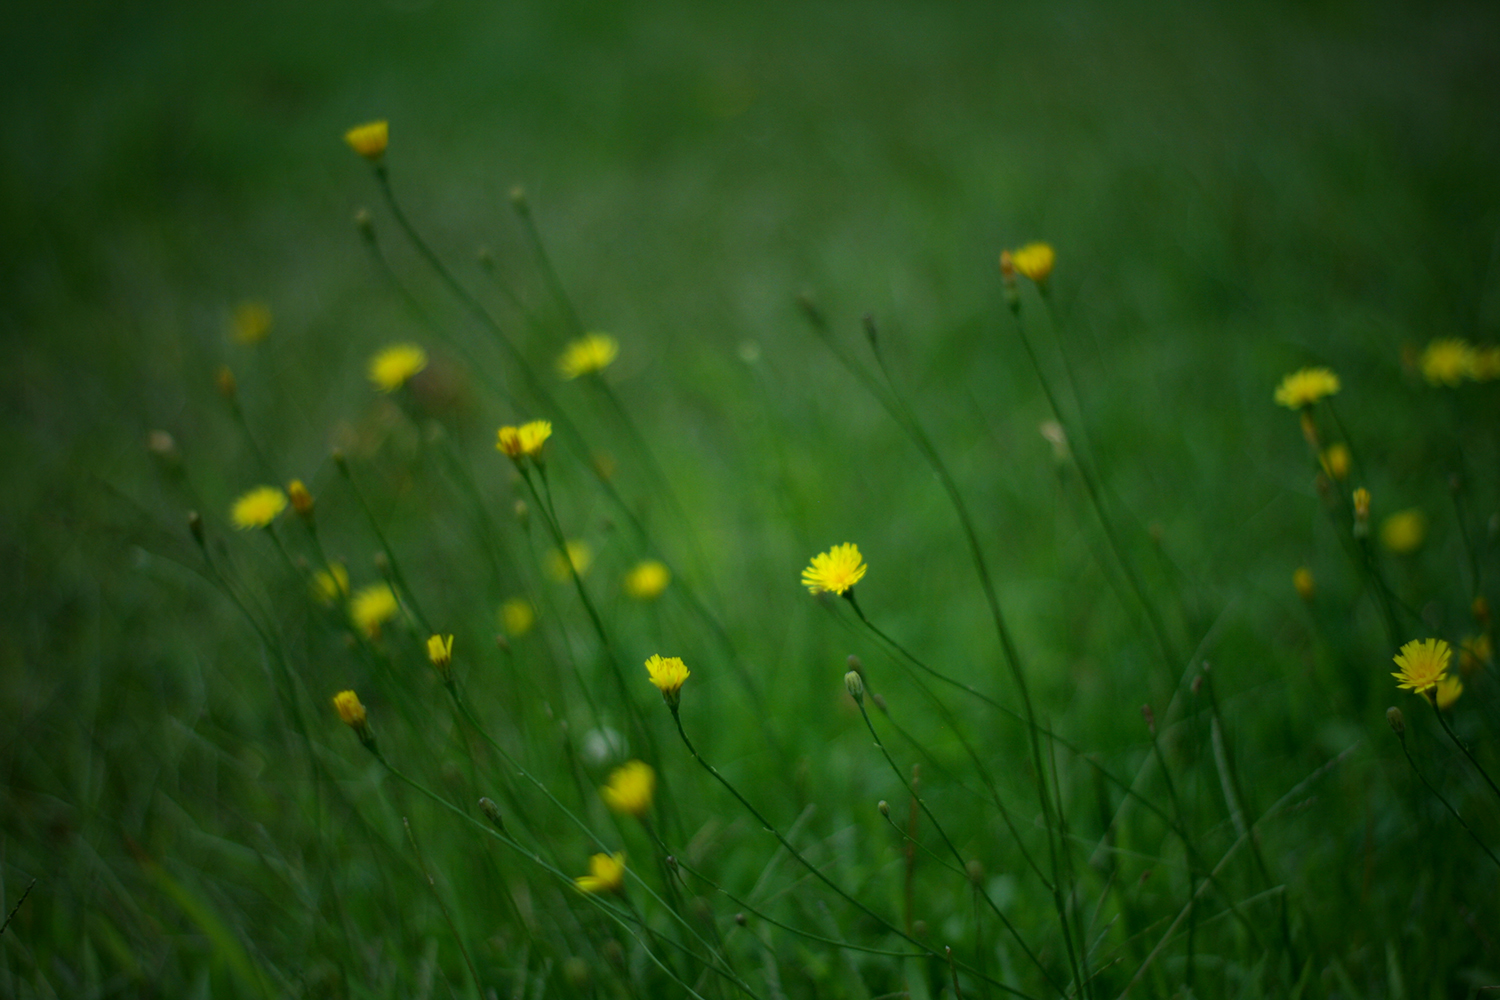 yellow hawkweed: edible flowers and other foraged flora